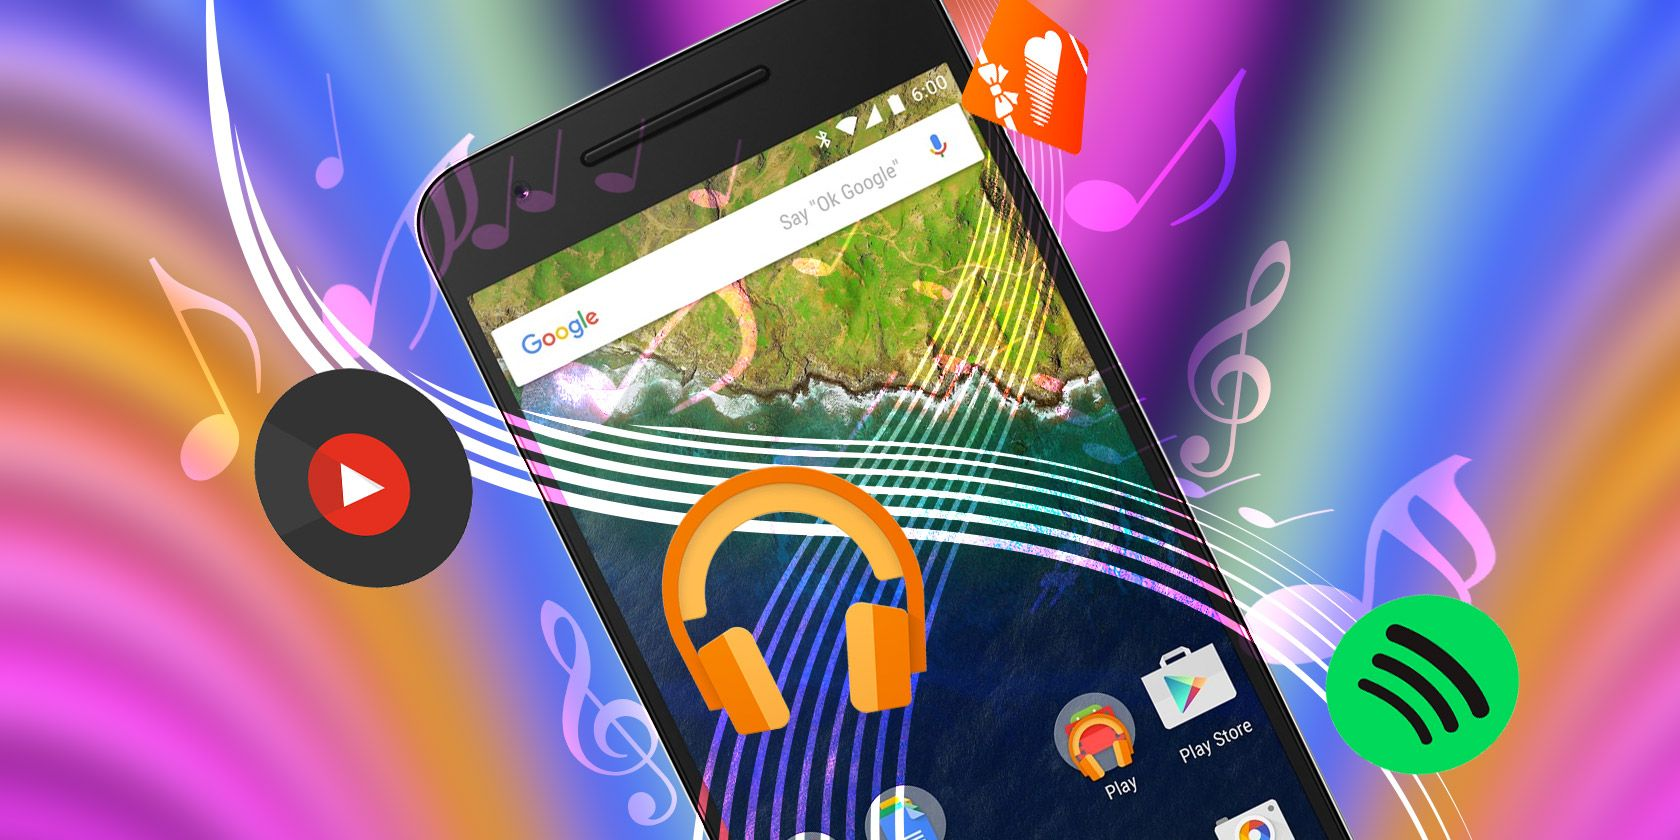 10 best audio recording apps for Android - Android Authority